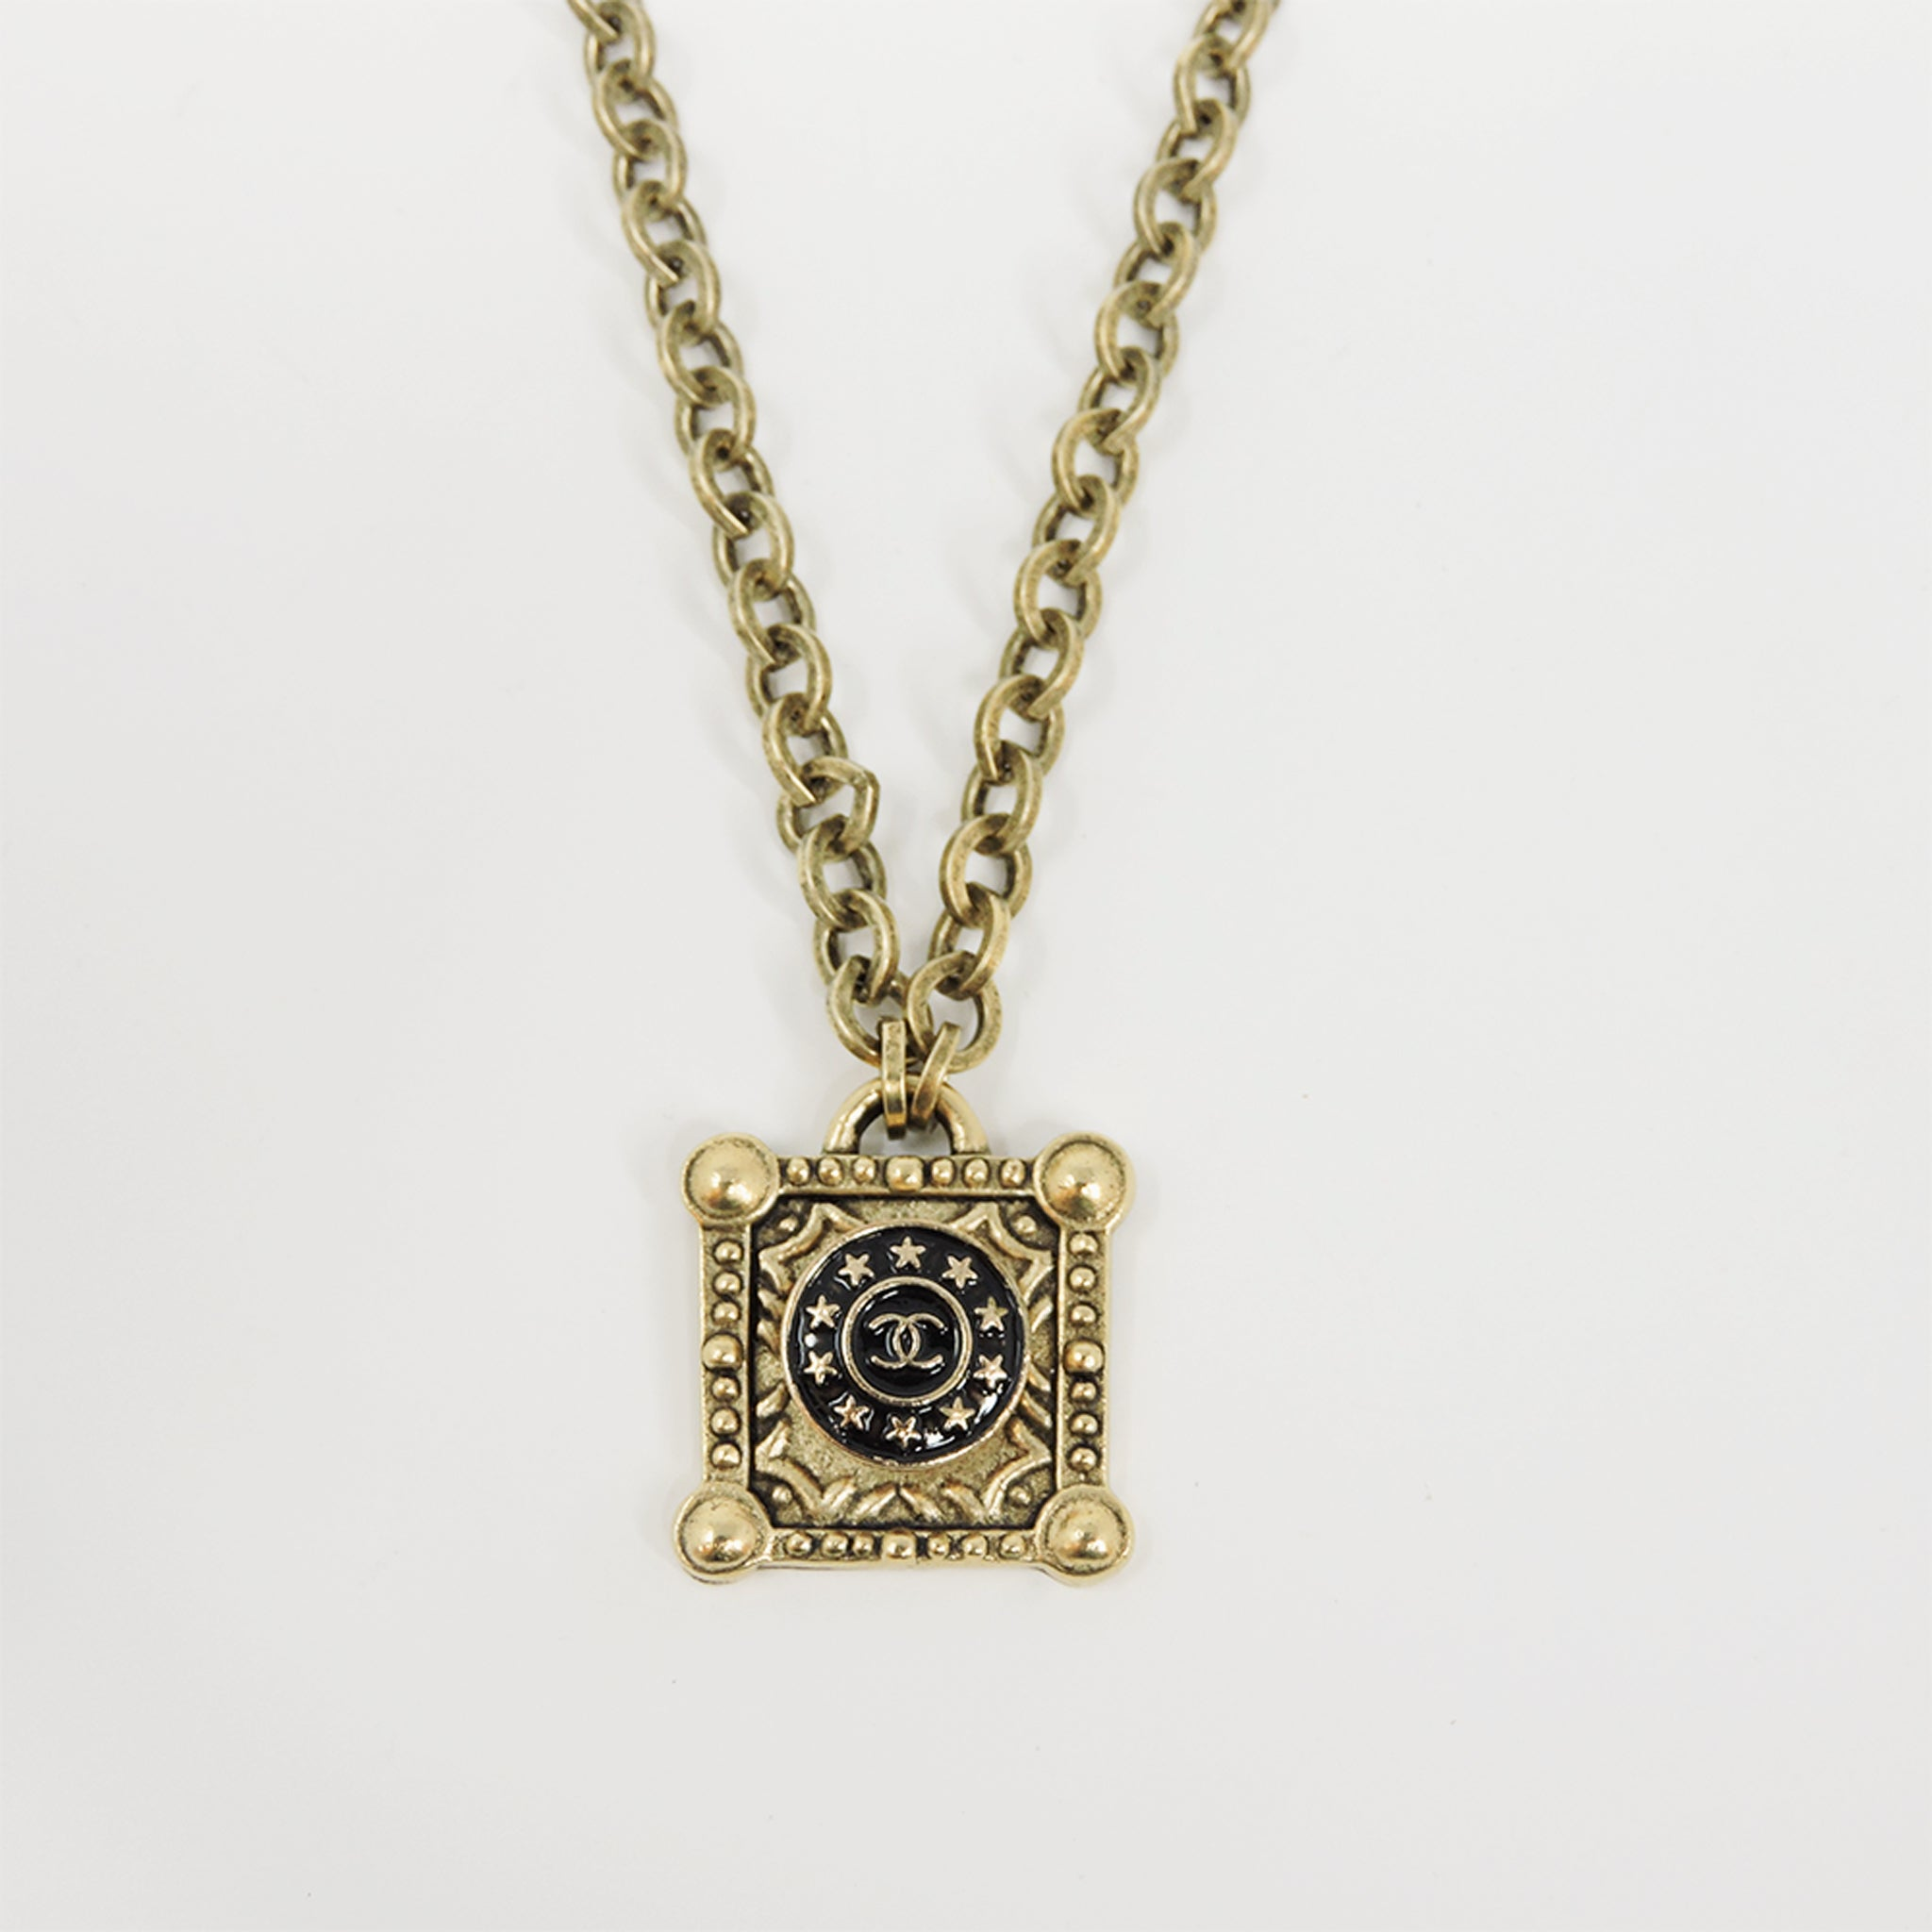 Vintage CC Black Star Necklace